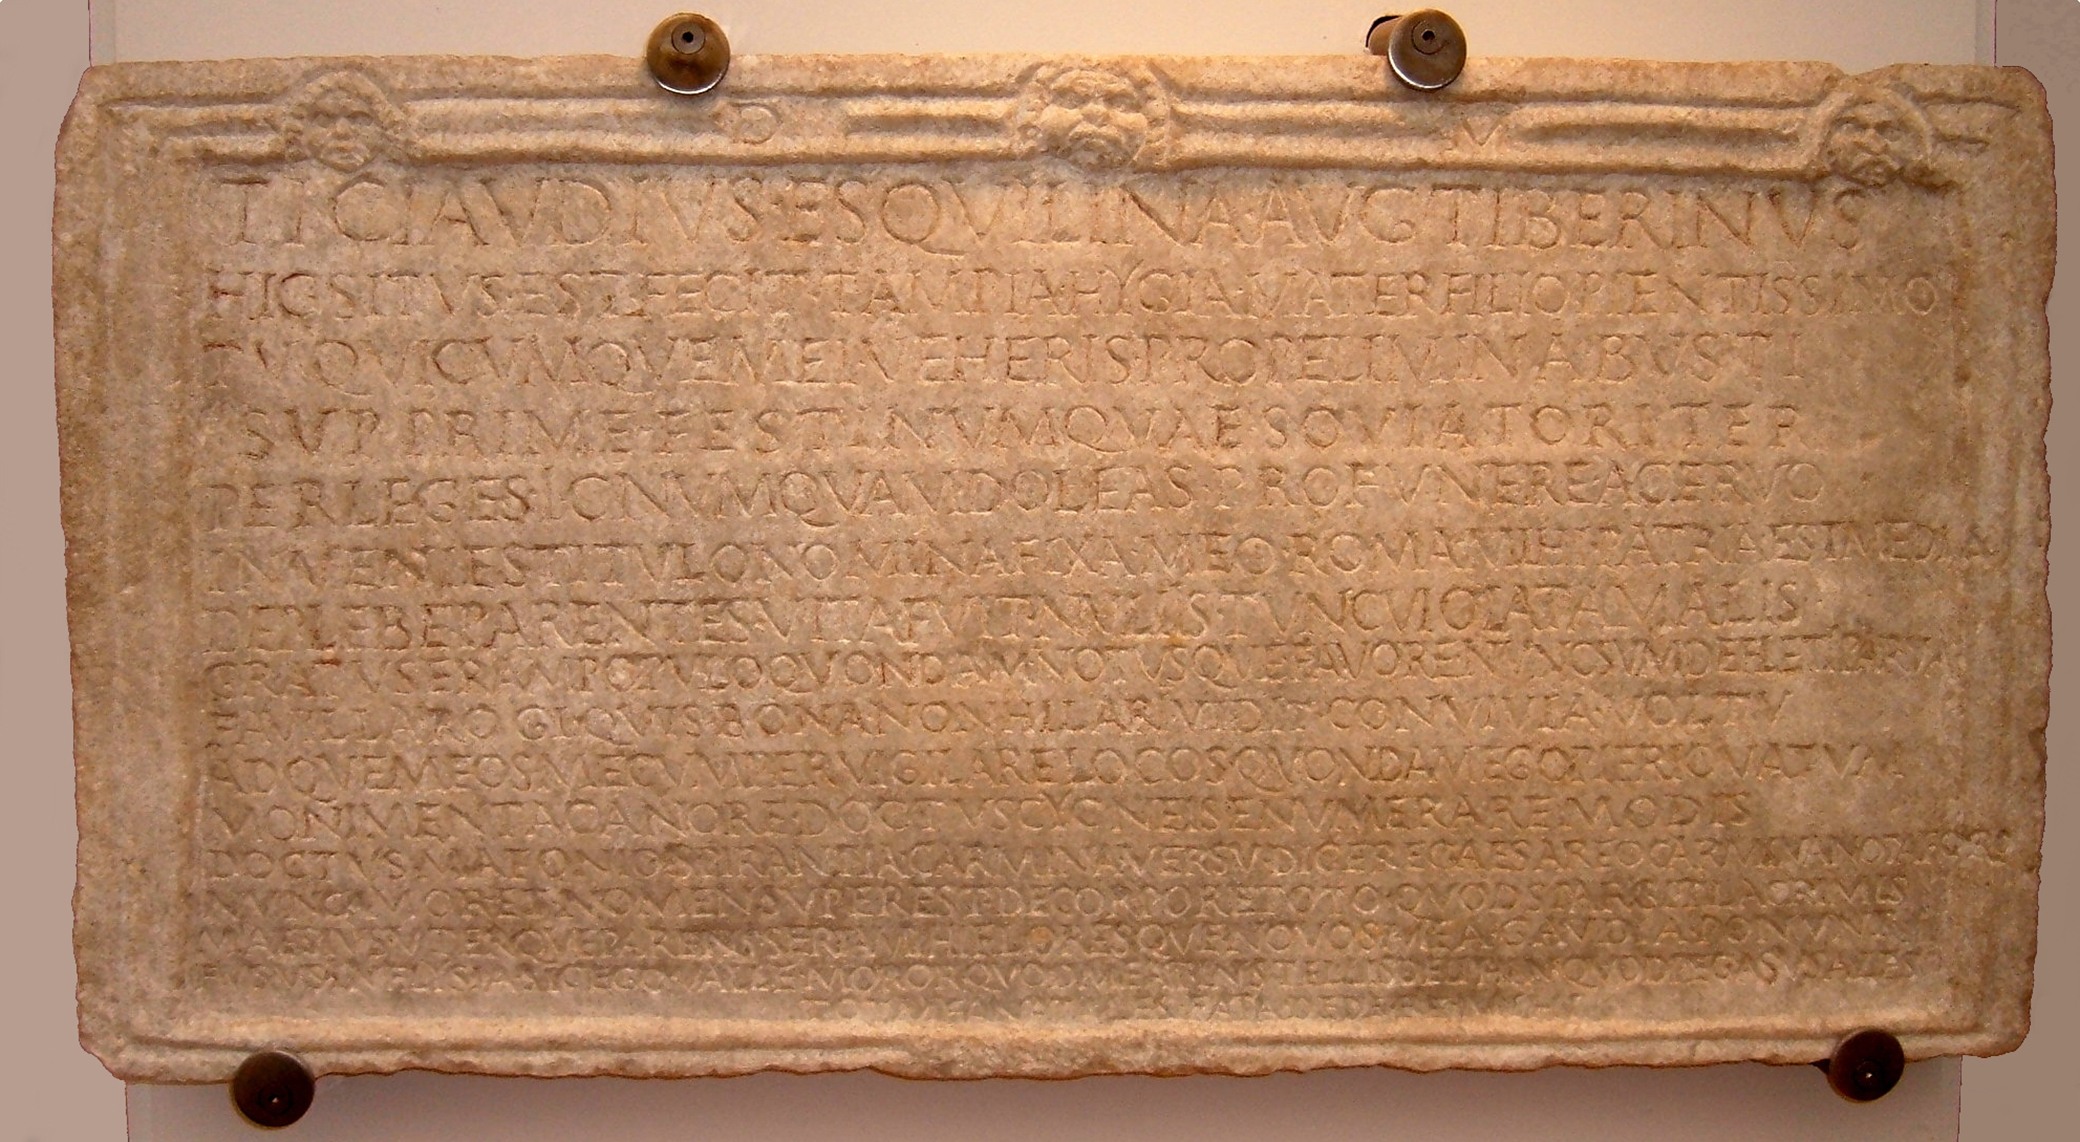 Photograph of the inscription on the tomb of Tiberius Claudius Tiberinus, Rome, by Kleuske. Wikimedia Commons (CC BY-SA 3.0).